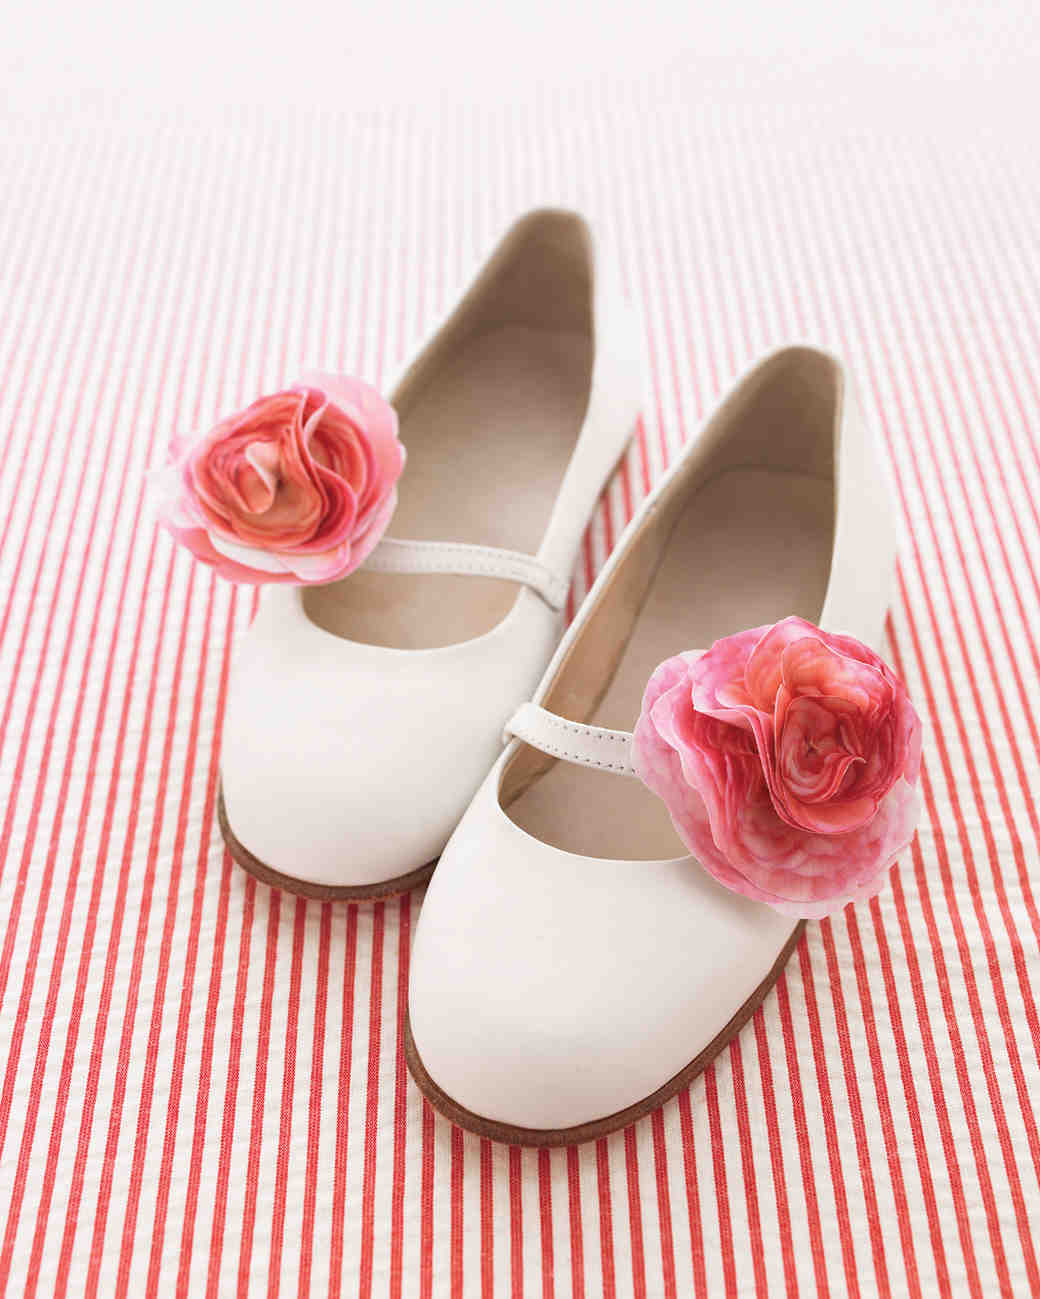 shoe-clip-full-bloom-flower-girl-su-10-0315.jpg